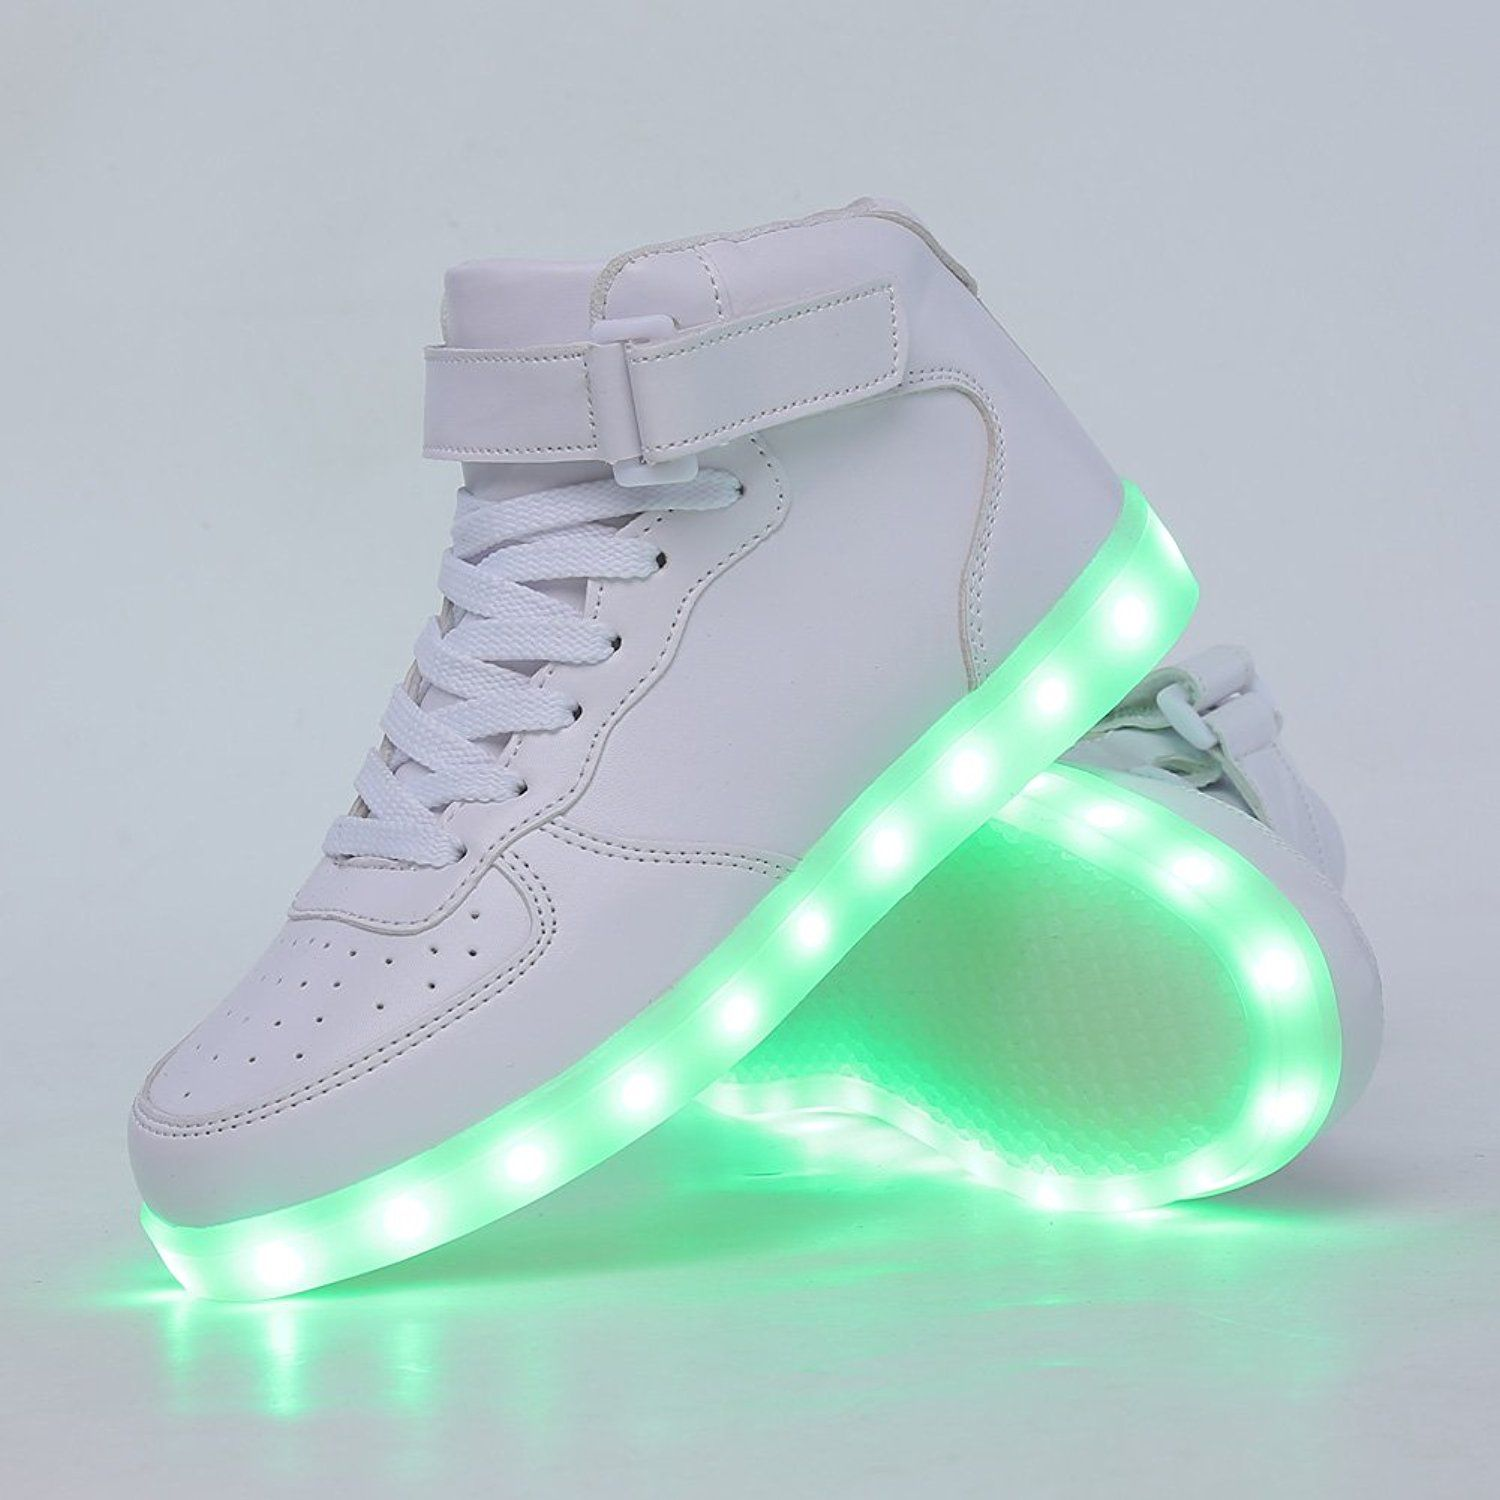 f14b1292597 Amazon.com | CIOR High Top Led Light Up Shoes 11 Colors Flashing  Rechargeable Sneakers for Mens Womens Girls Boys, 101B, 02, 32 | Fashion  Sneakers